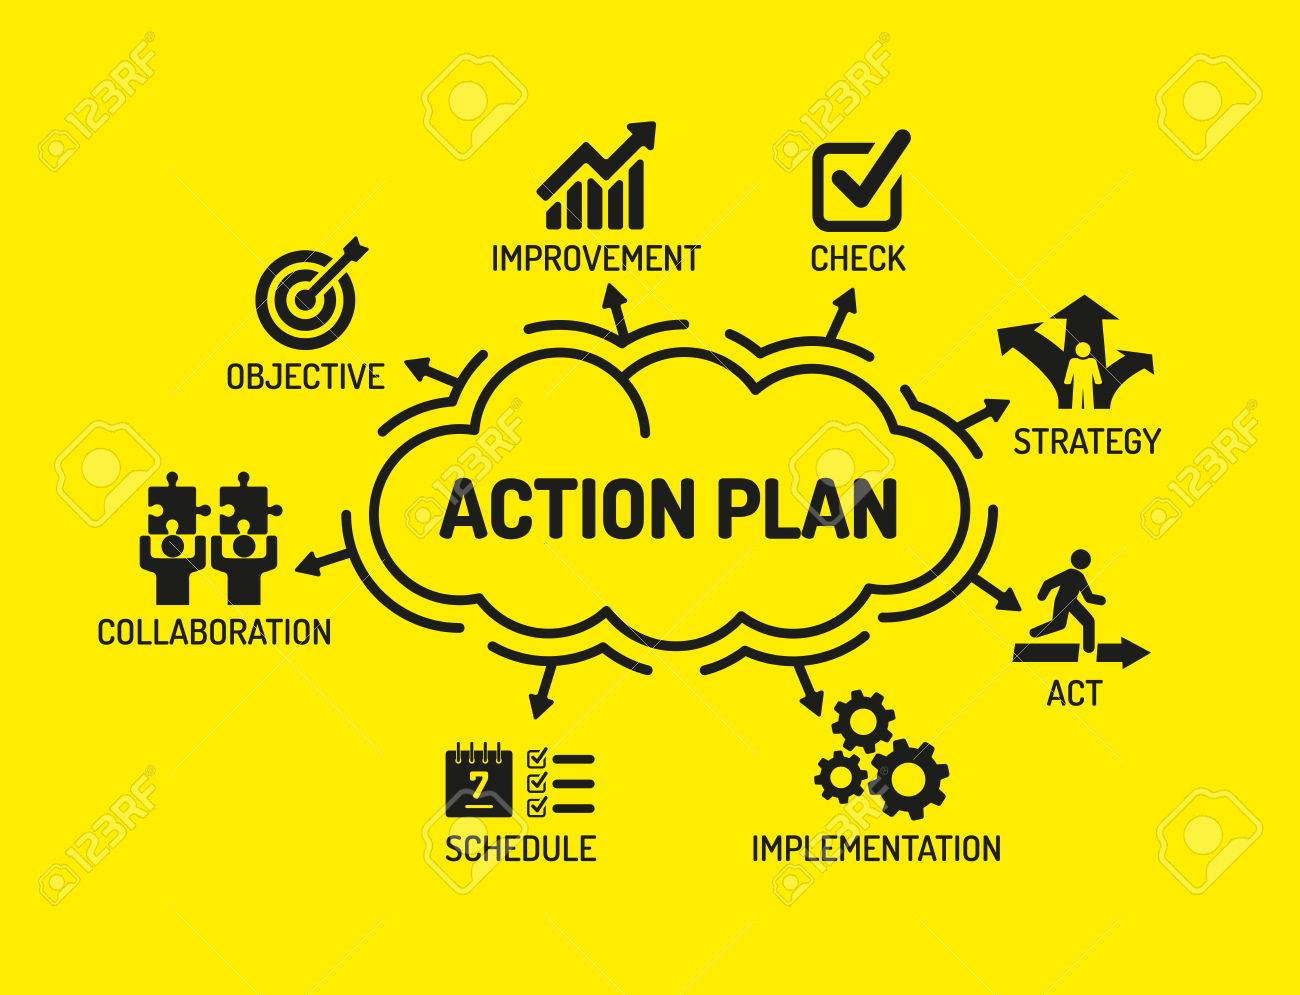 Action Plan. Chart with keywords and icons on yellow background.